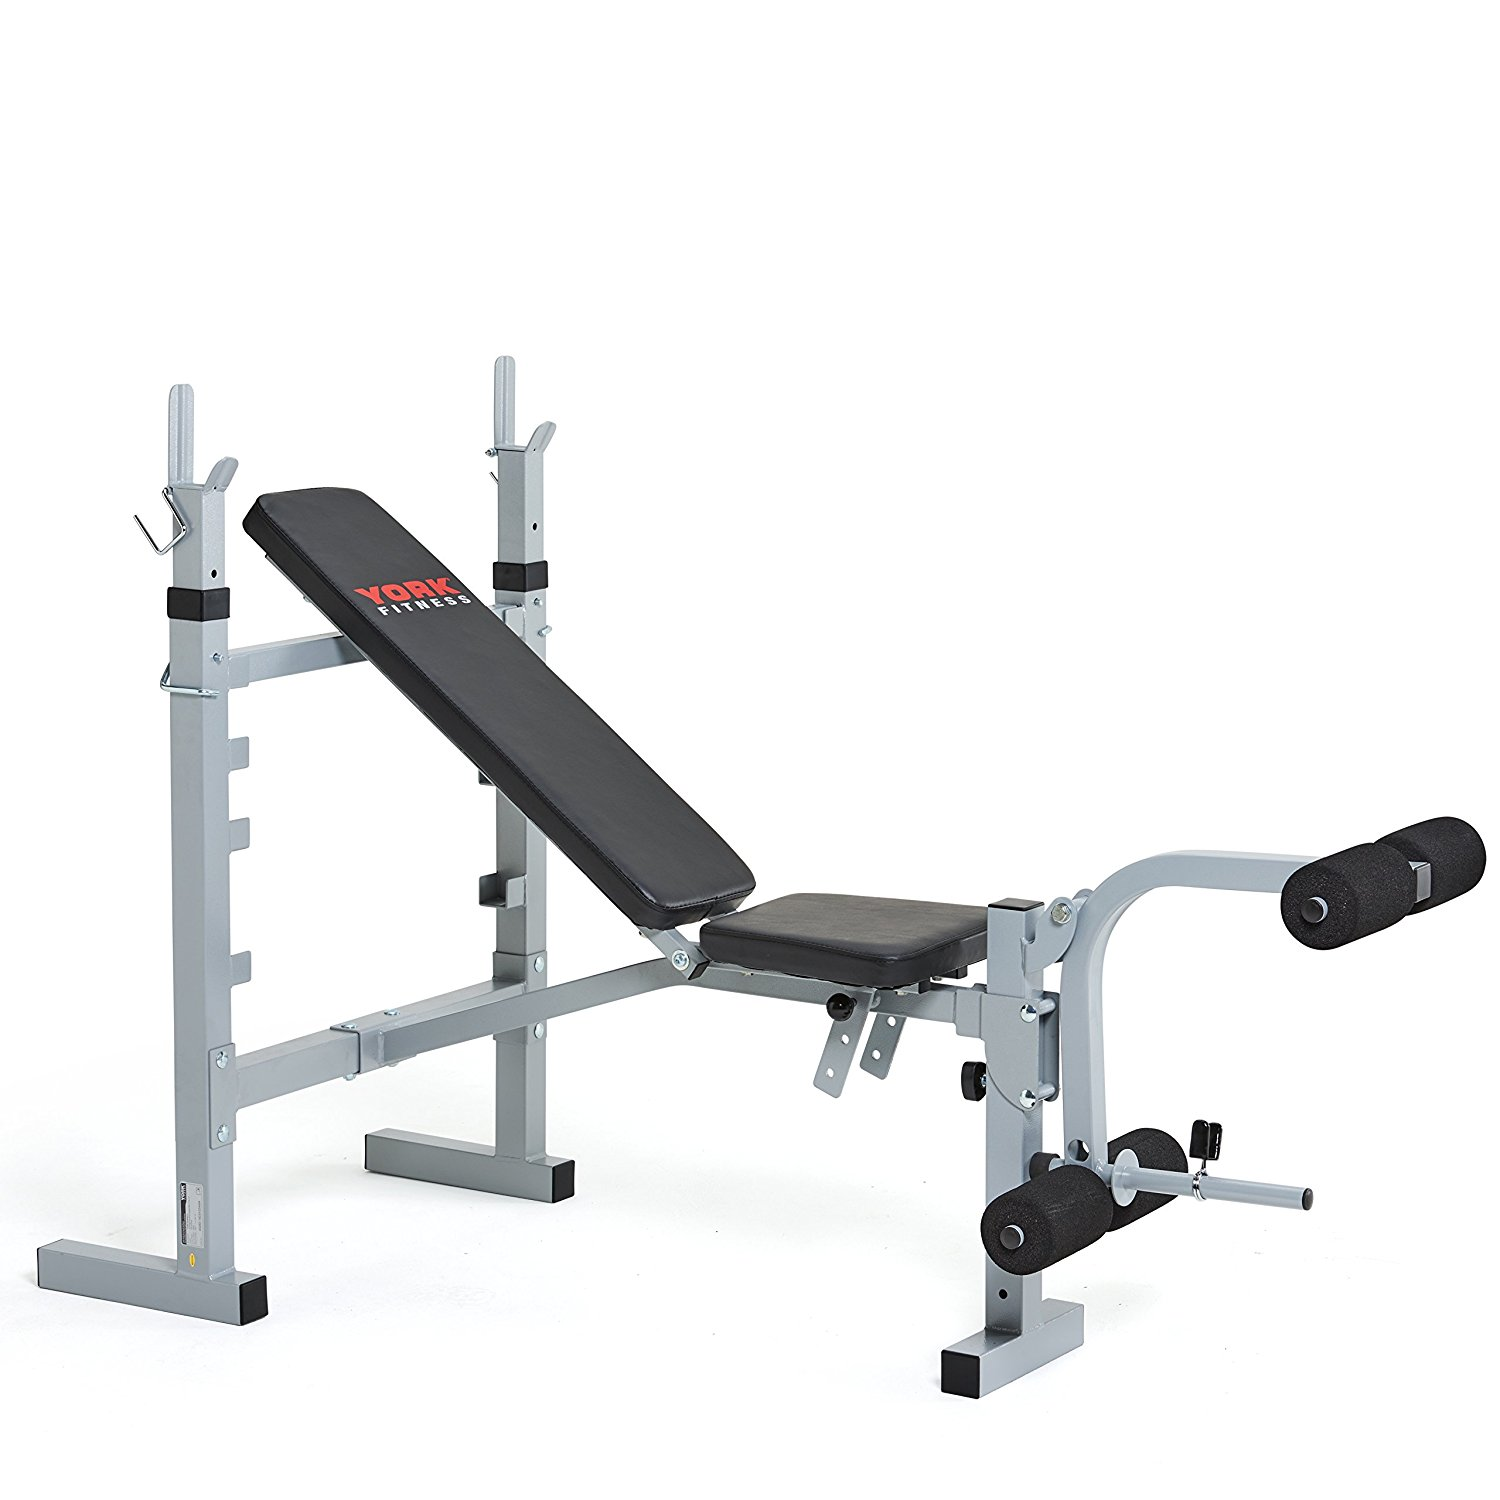 weights va with click hover set lifemax full bench scl over standard fingerhut weight lb uts and to image for product zoom